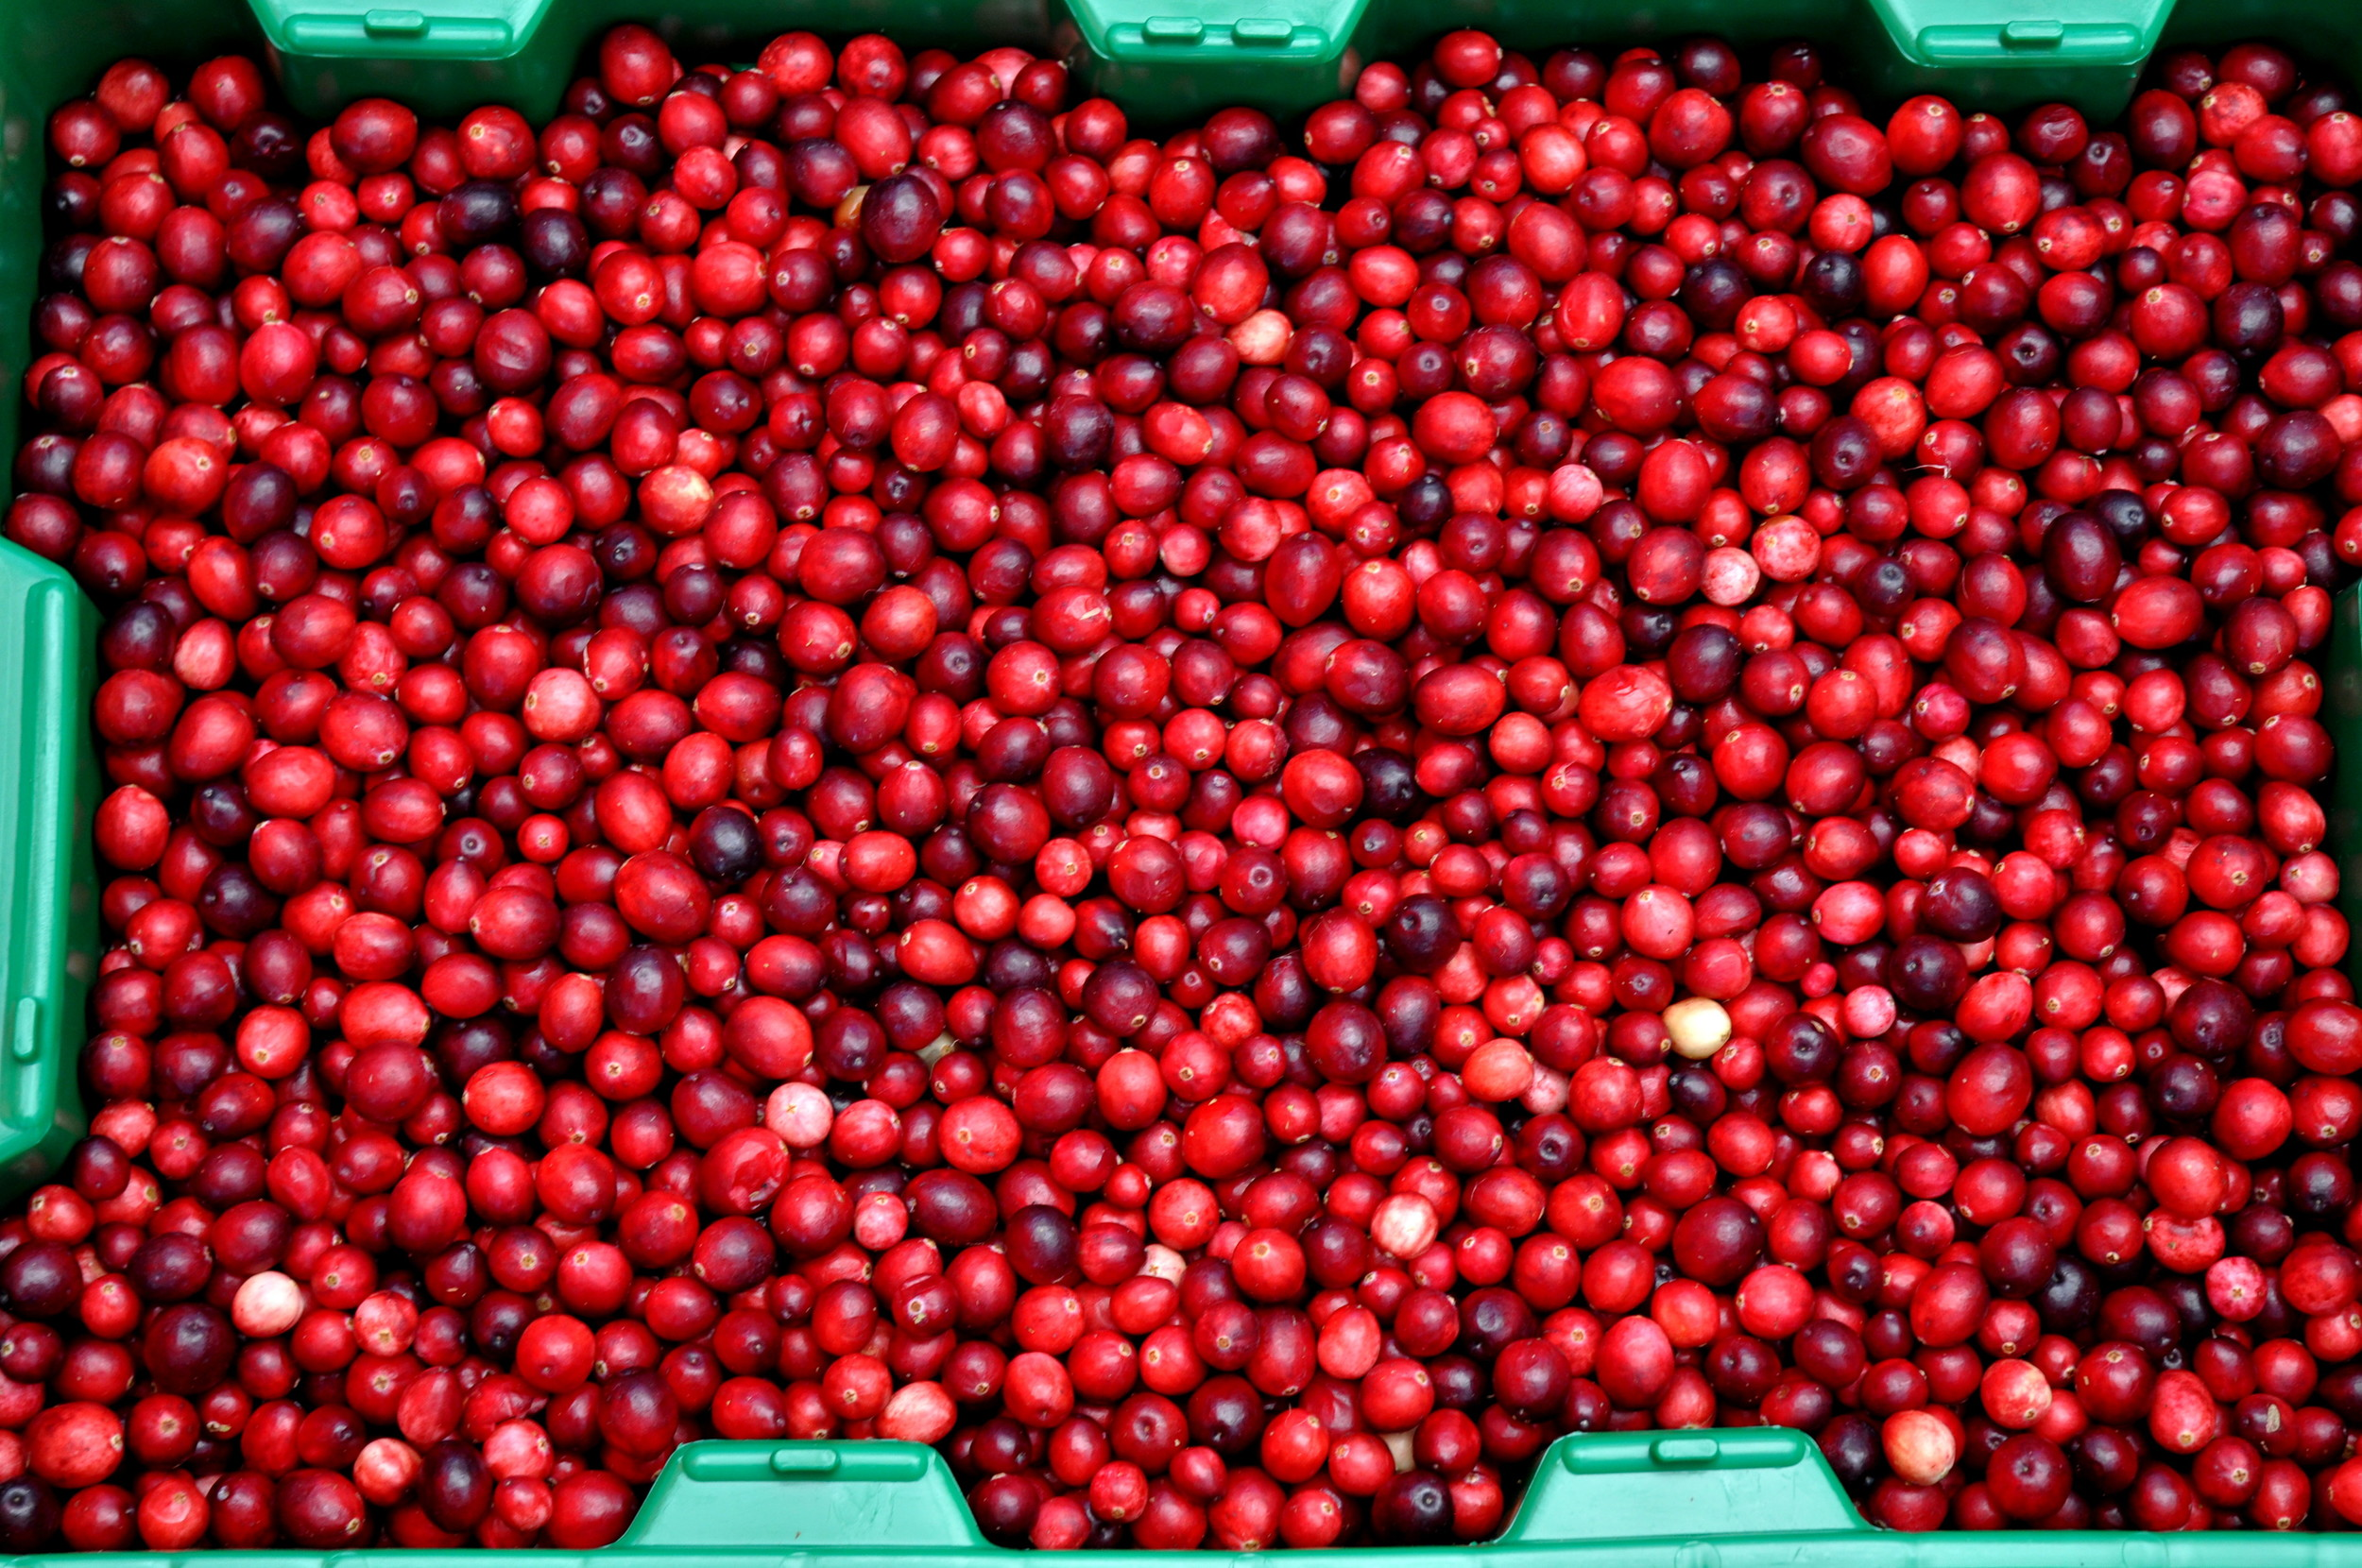 Fresh cranberries from Bloom Creek Cranberry Farm. Photo copyright 2013 by Zachary D. Lyons.